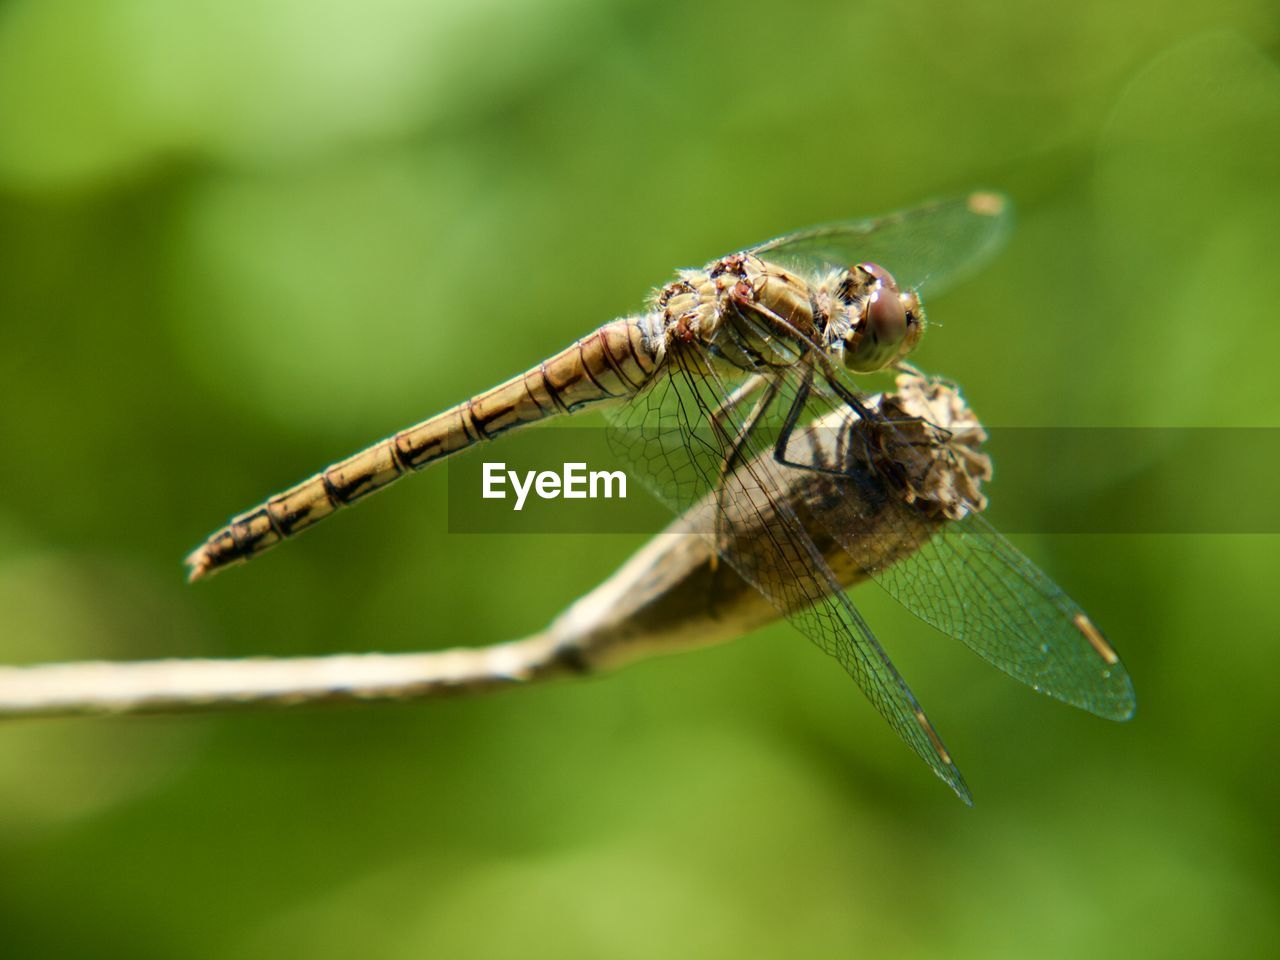 insect, invertebrate, animals in the wild, animal wildlife, animal themes, animal, one animal, close-up, animal wing, plant part, leaf, green color, focus on foreground, no people, selective focus, nature, plant, day, zoology, dragonfly, animal eye